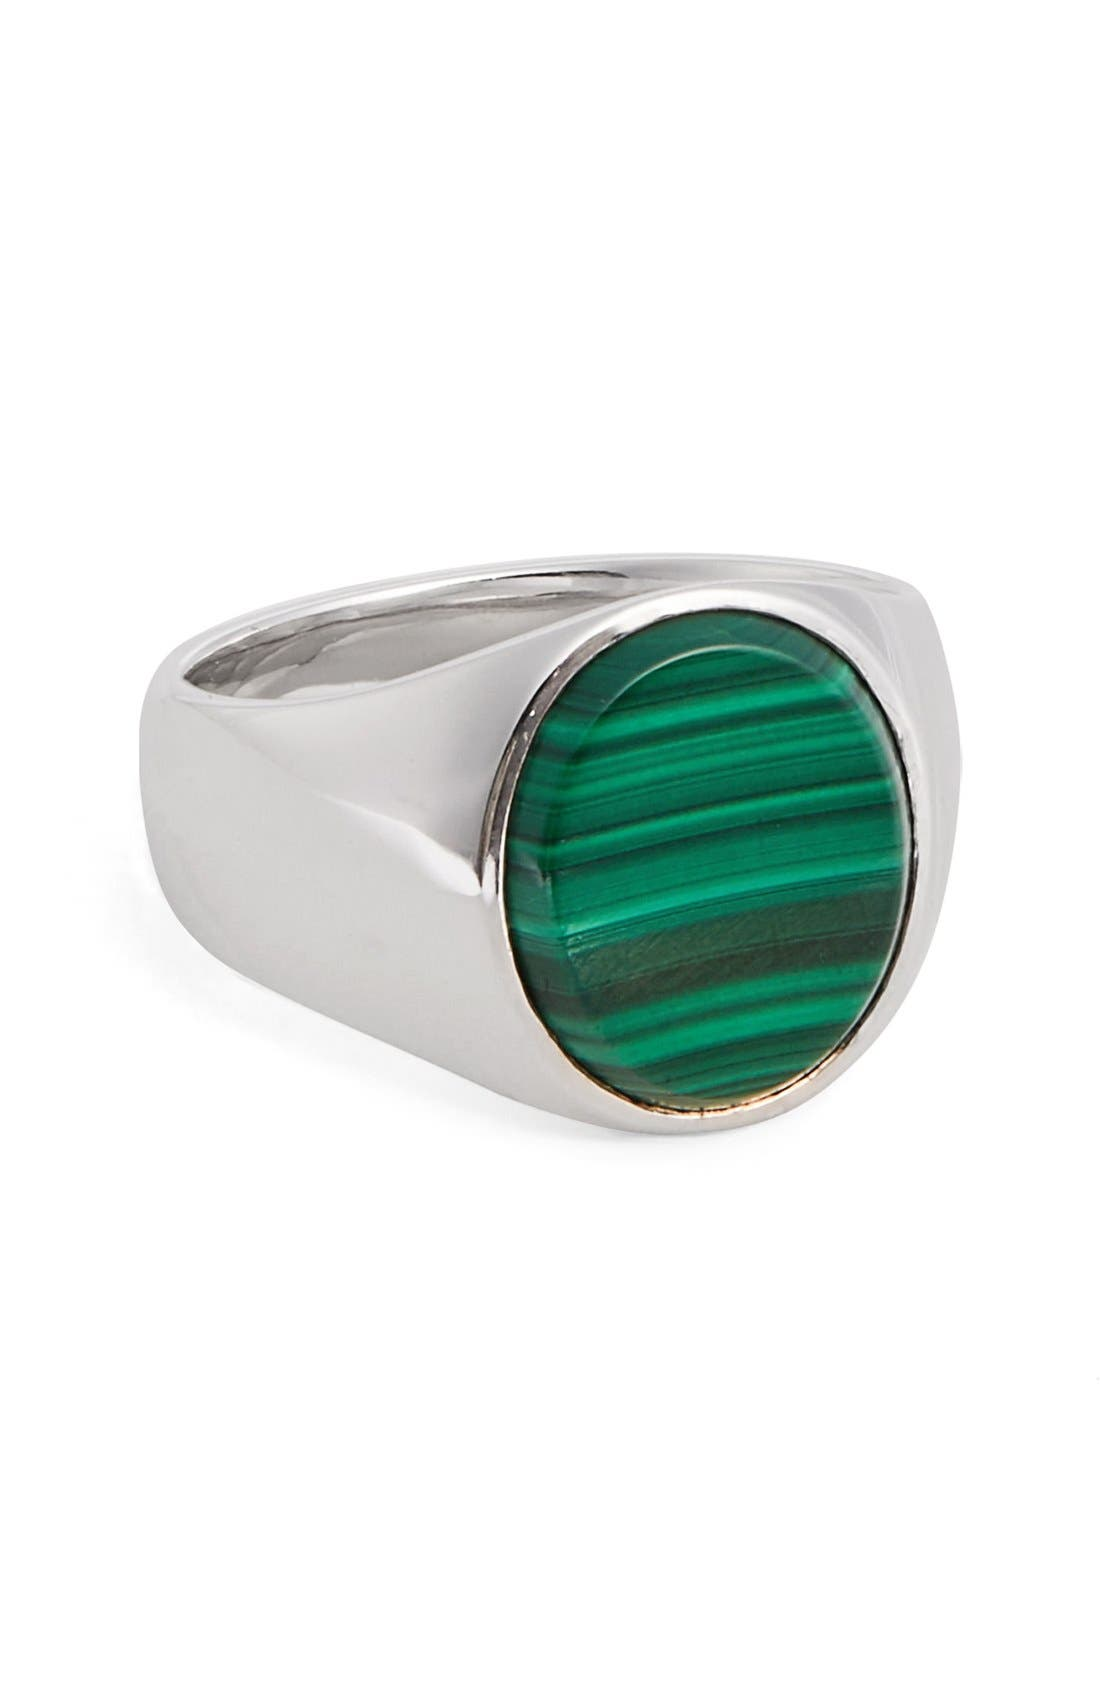 'Patriot Collection' Oval Malachite Signet Ring,                             Main thumbnail 1, color,                             Silver